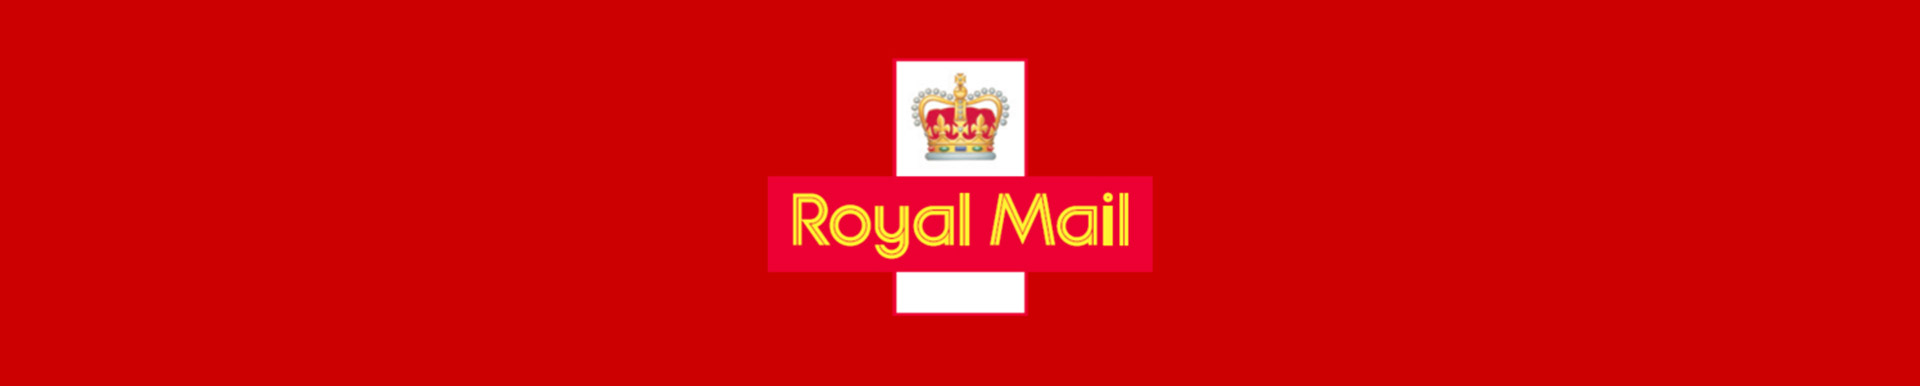 Royal Mail Leaflet Distribution News